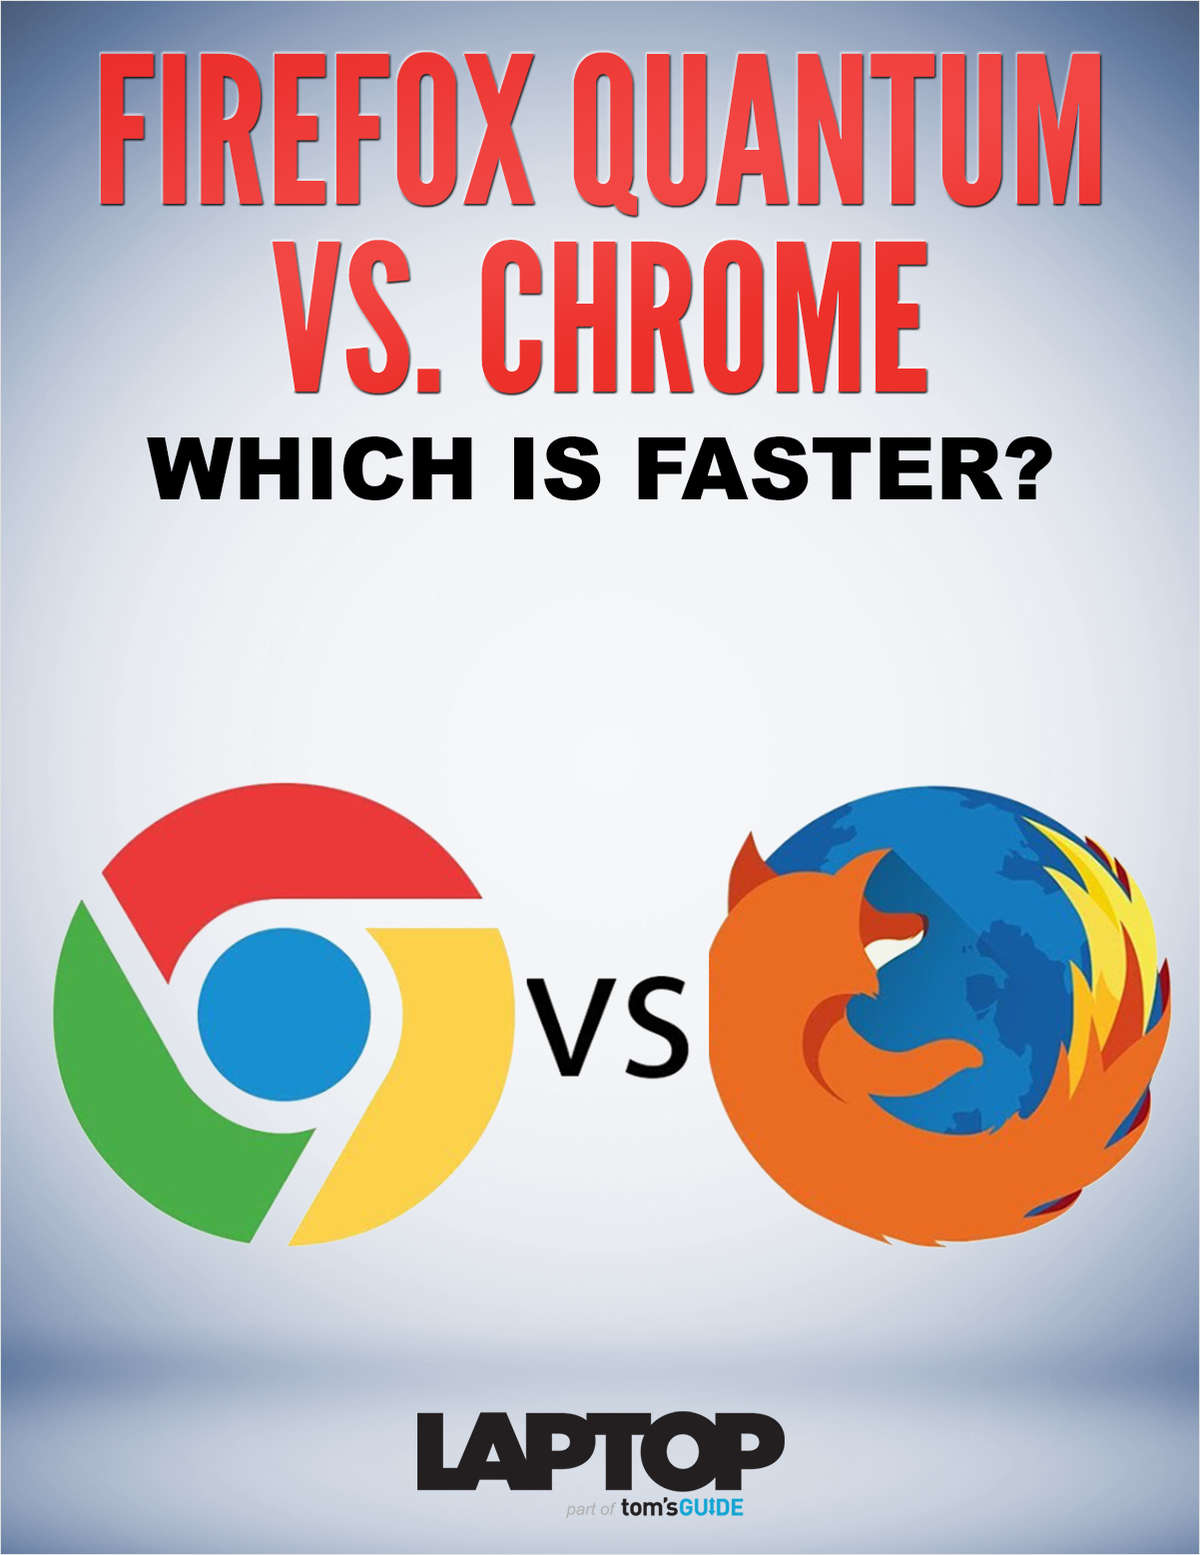 Firefox Quantum vs. Chrome - Which is Faster?